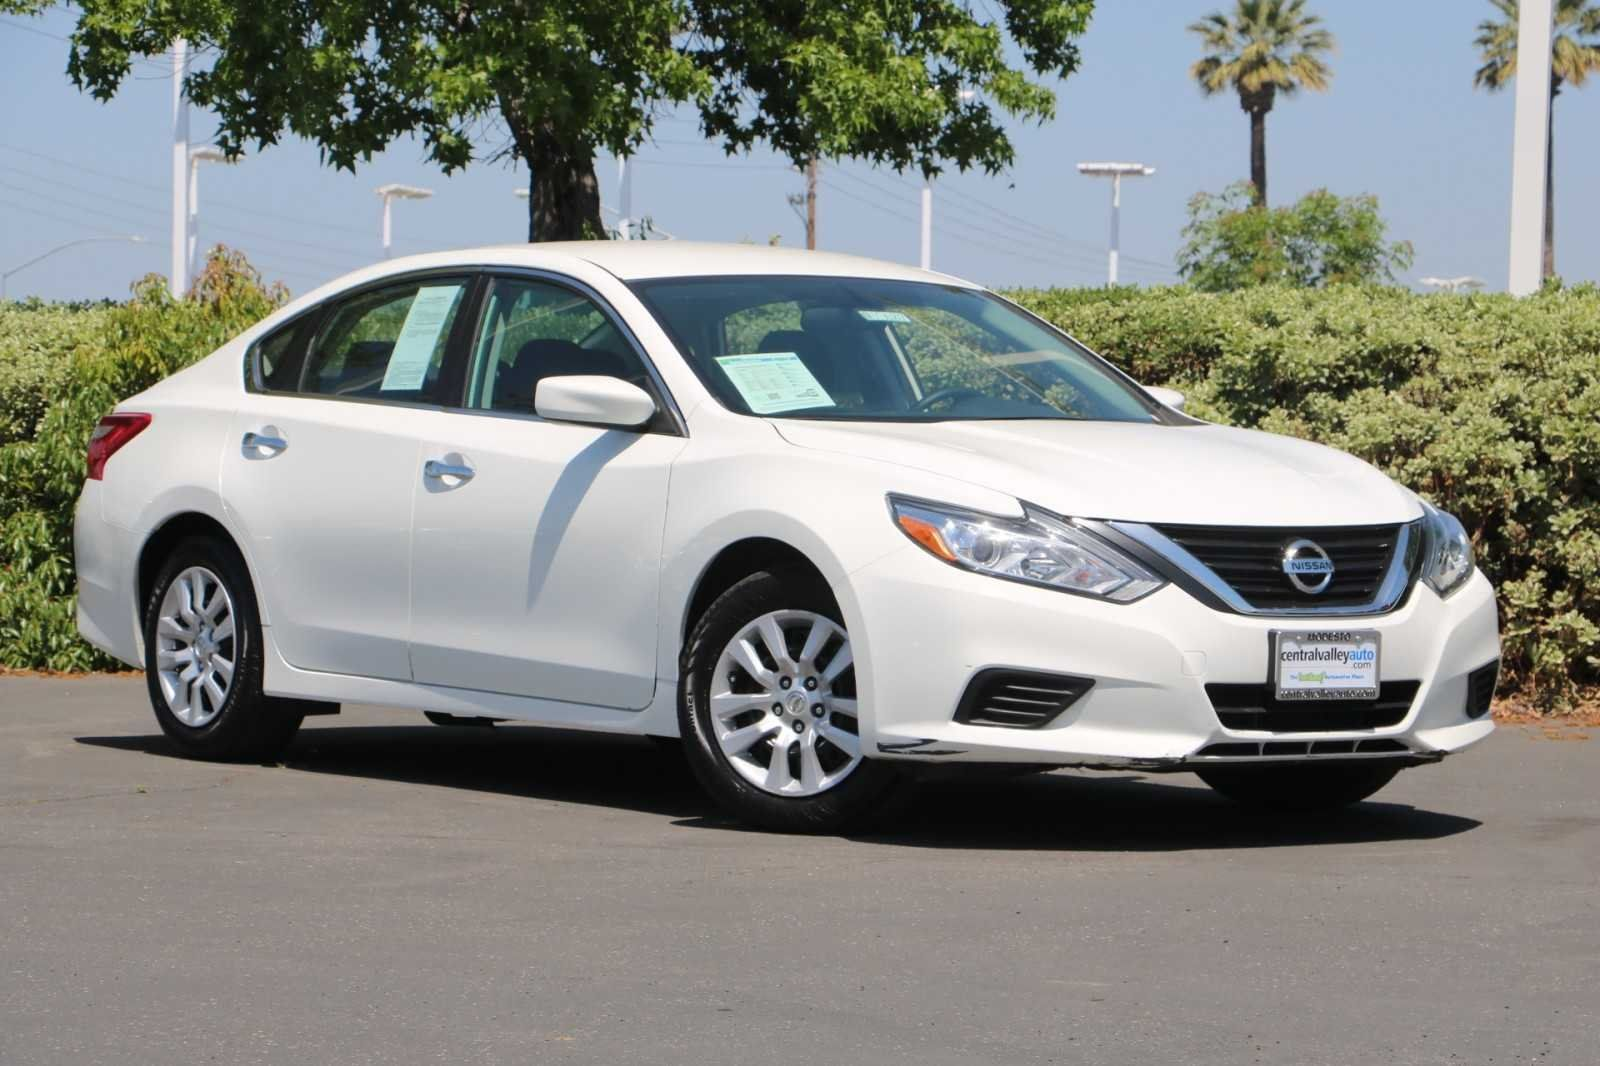 Used Nissan Altima 2017 Cars Modesto, CA at Geebo